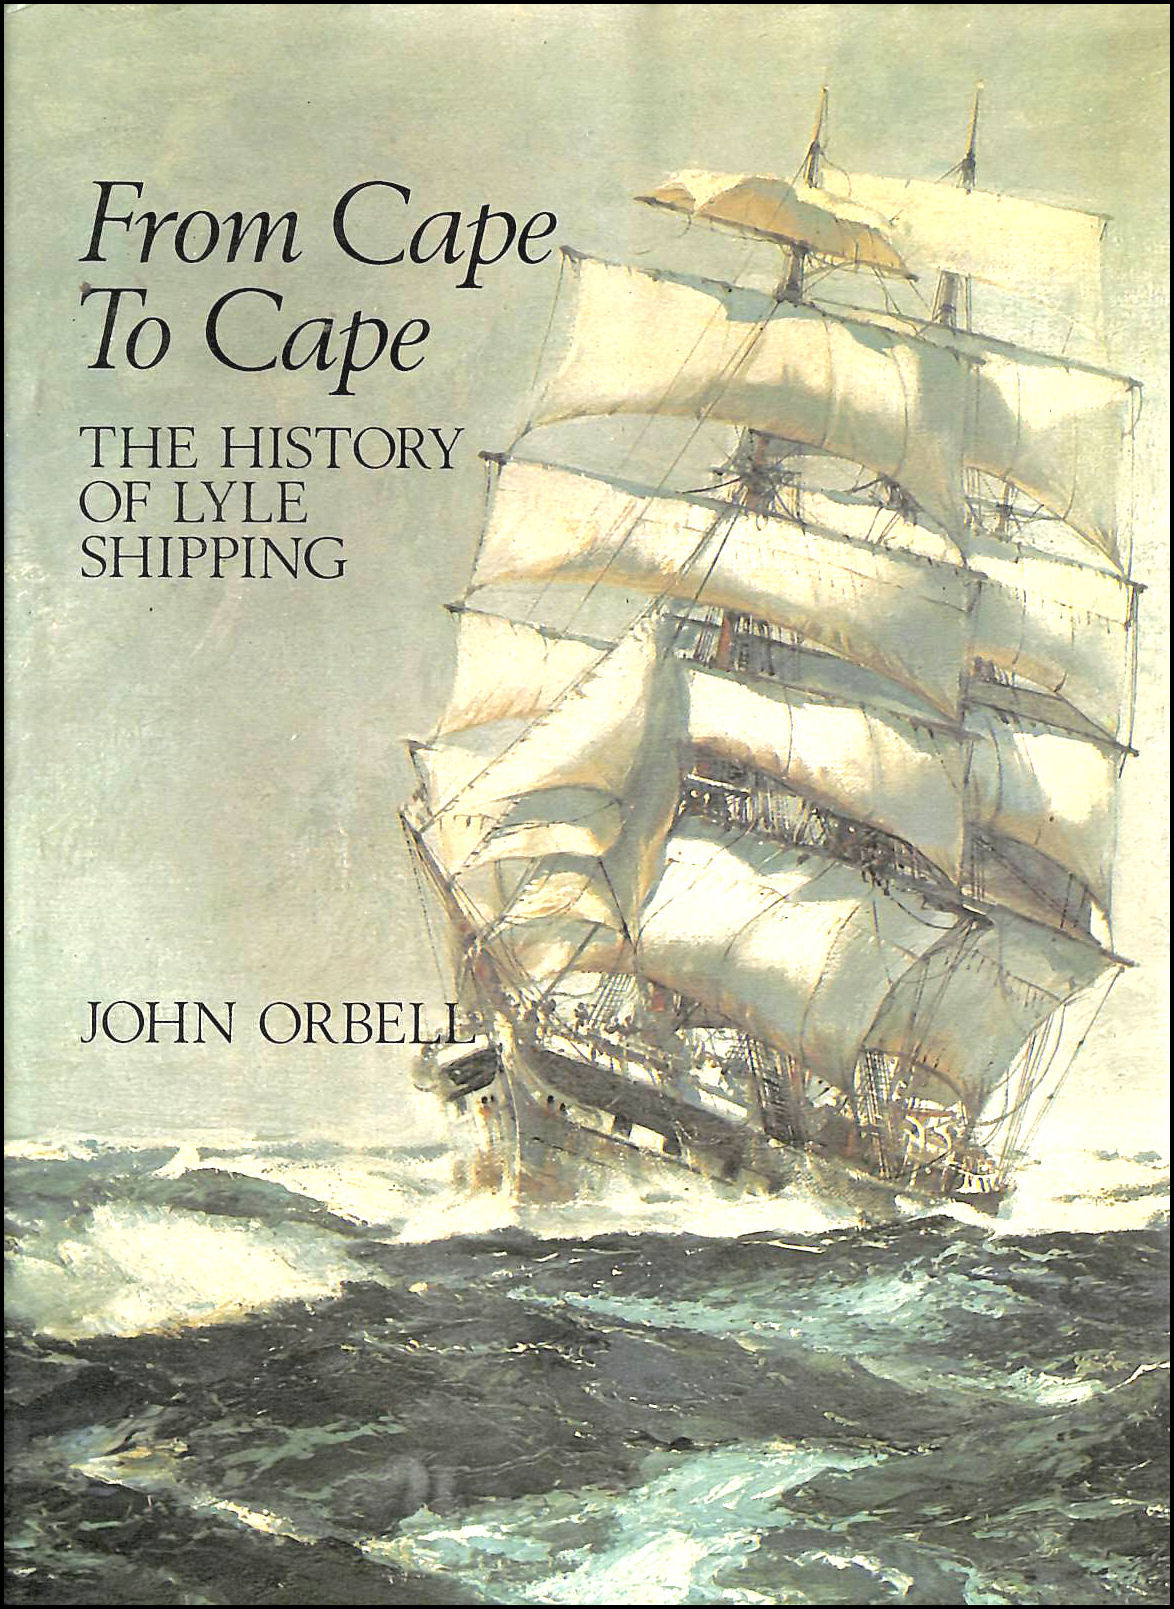 ORBELL, JOHN - From Cape to Cape: History of Lyle Shipping